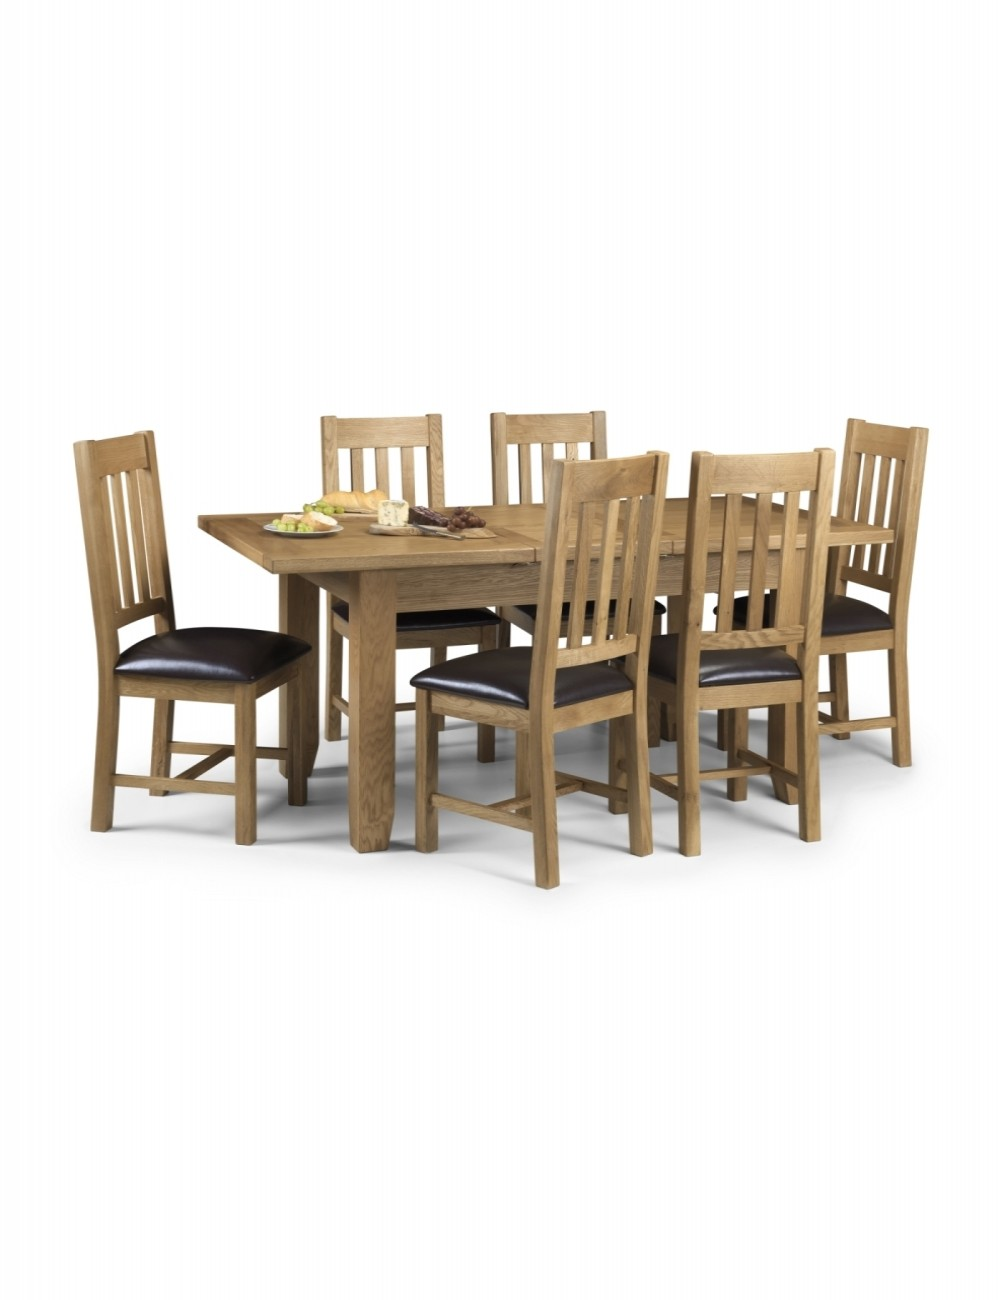 Julian bowen astoria dining set 4 chairs ast001 4 x ast002 for 4 x dining room chairs